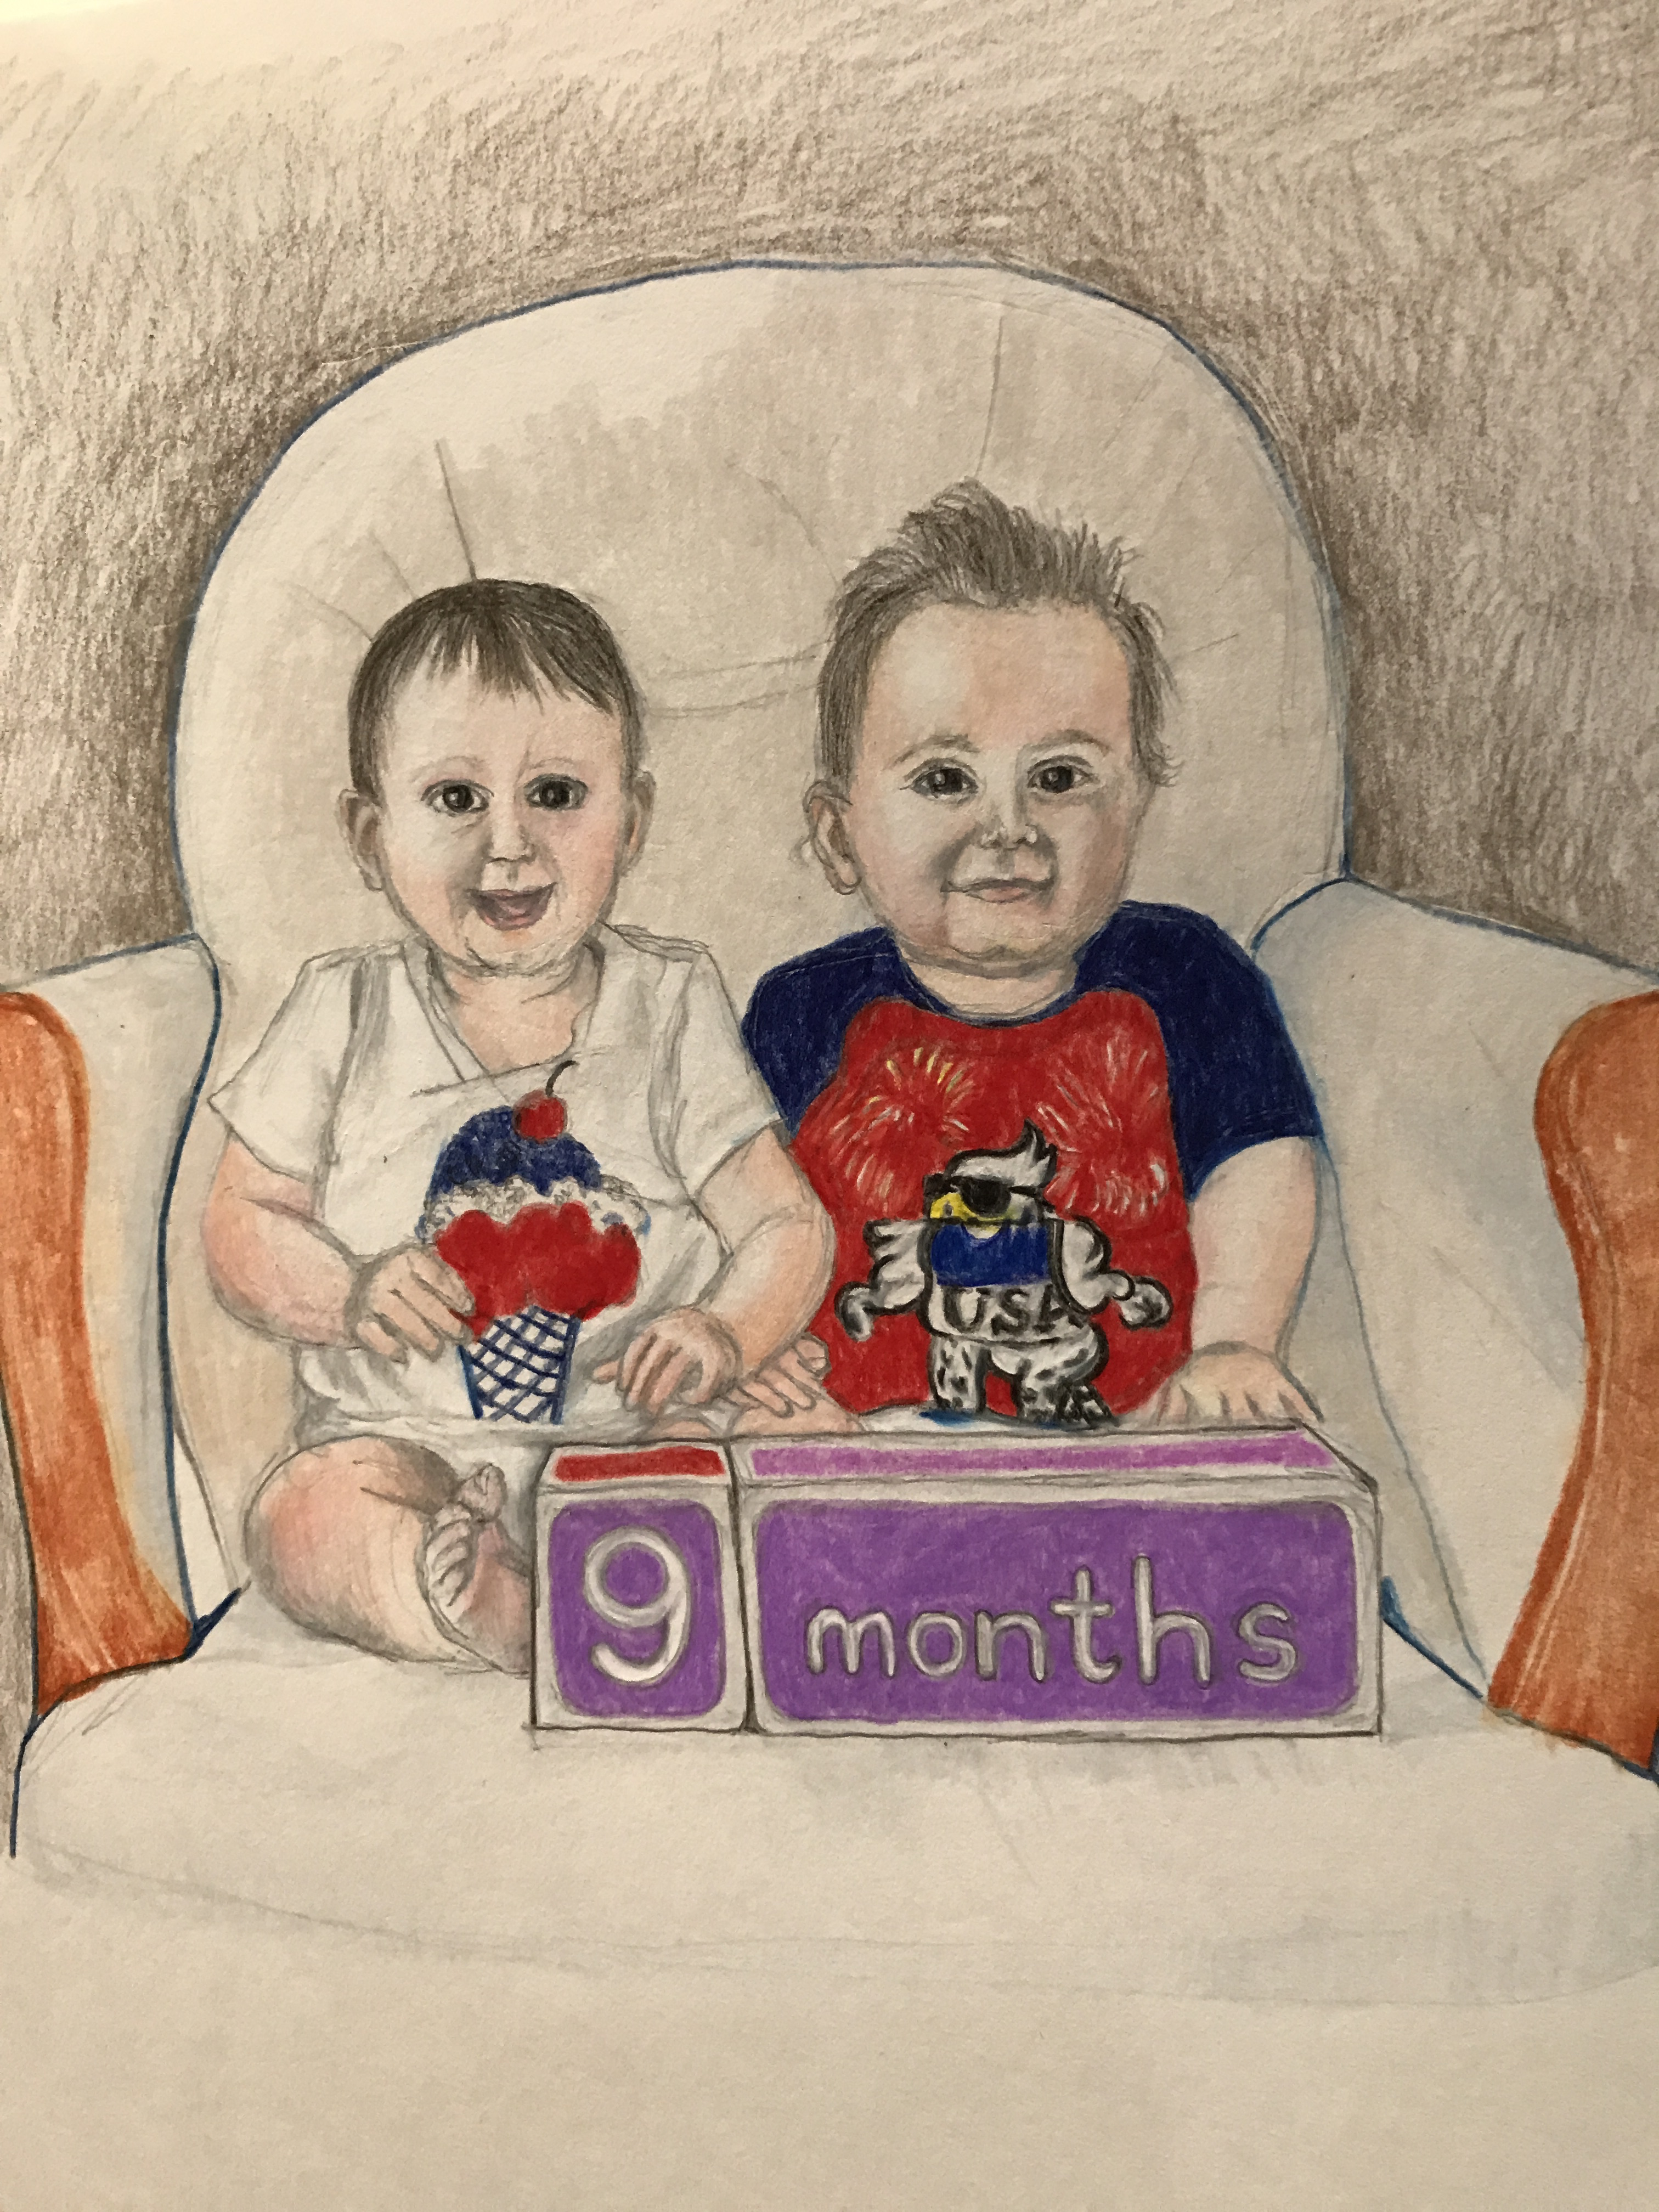 Suddenly Mad- The Unbelievable Story of Caarin showing up (drawing of Sara and Michael at 9 months)